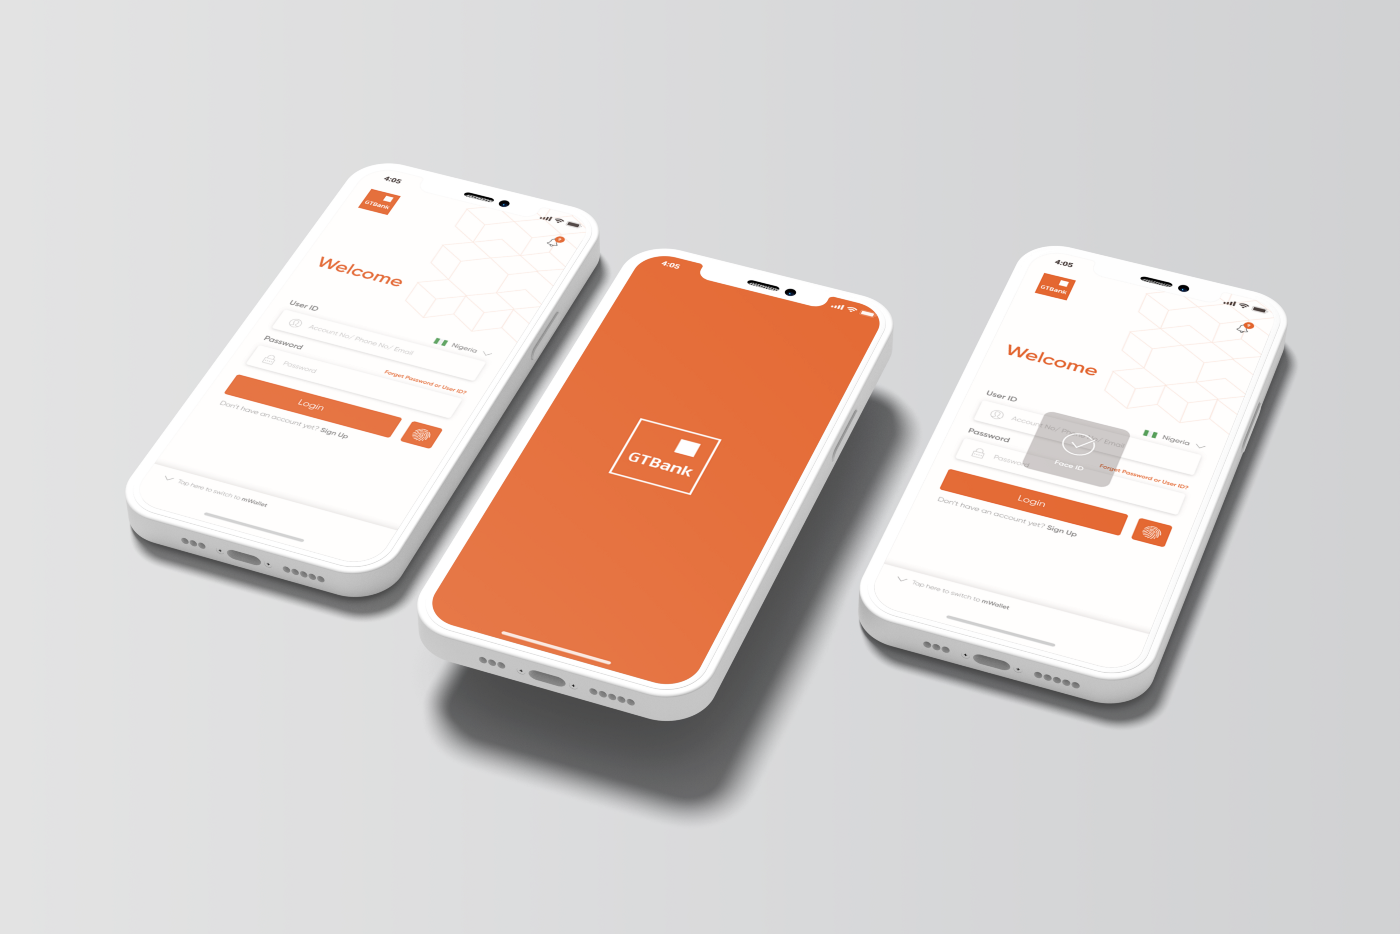 Login screens of the newly improved mobile application